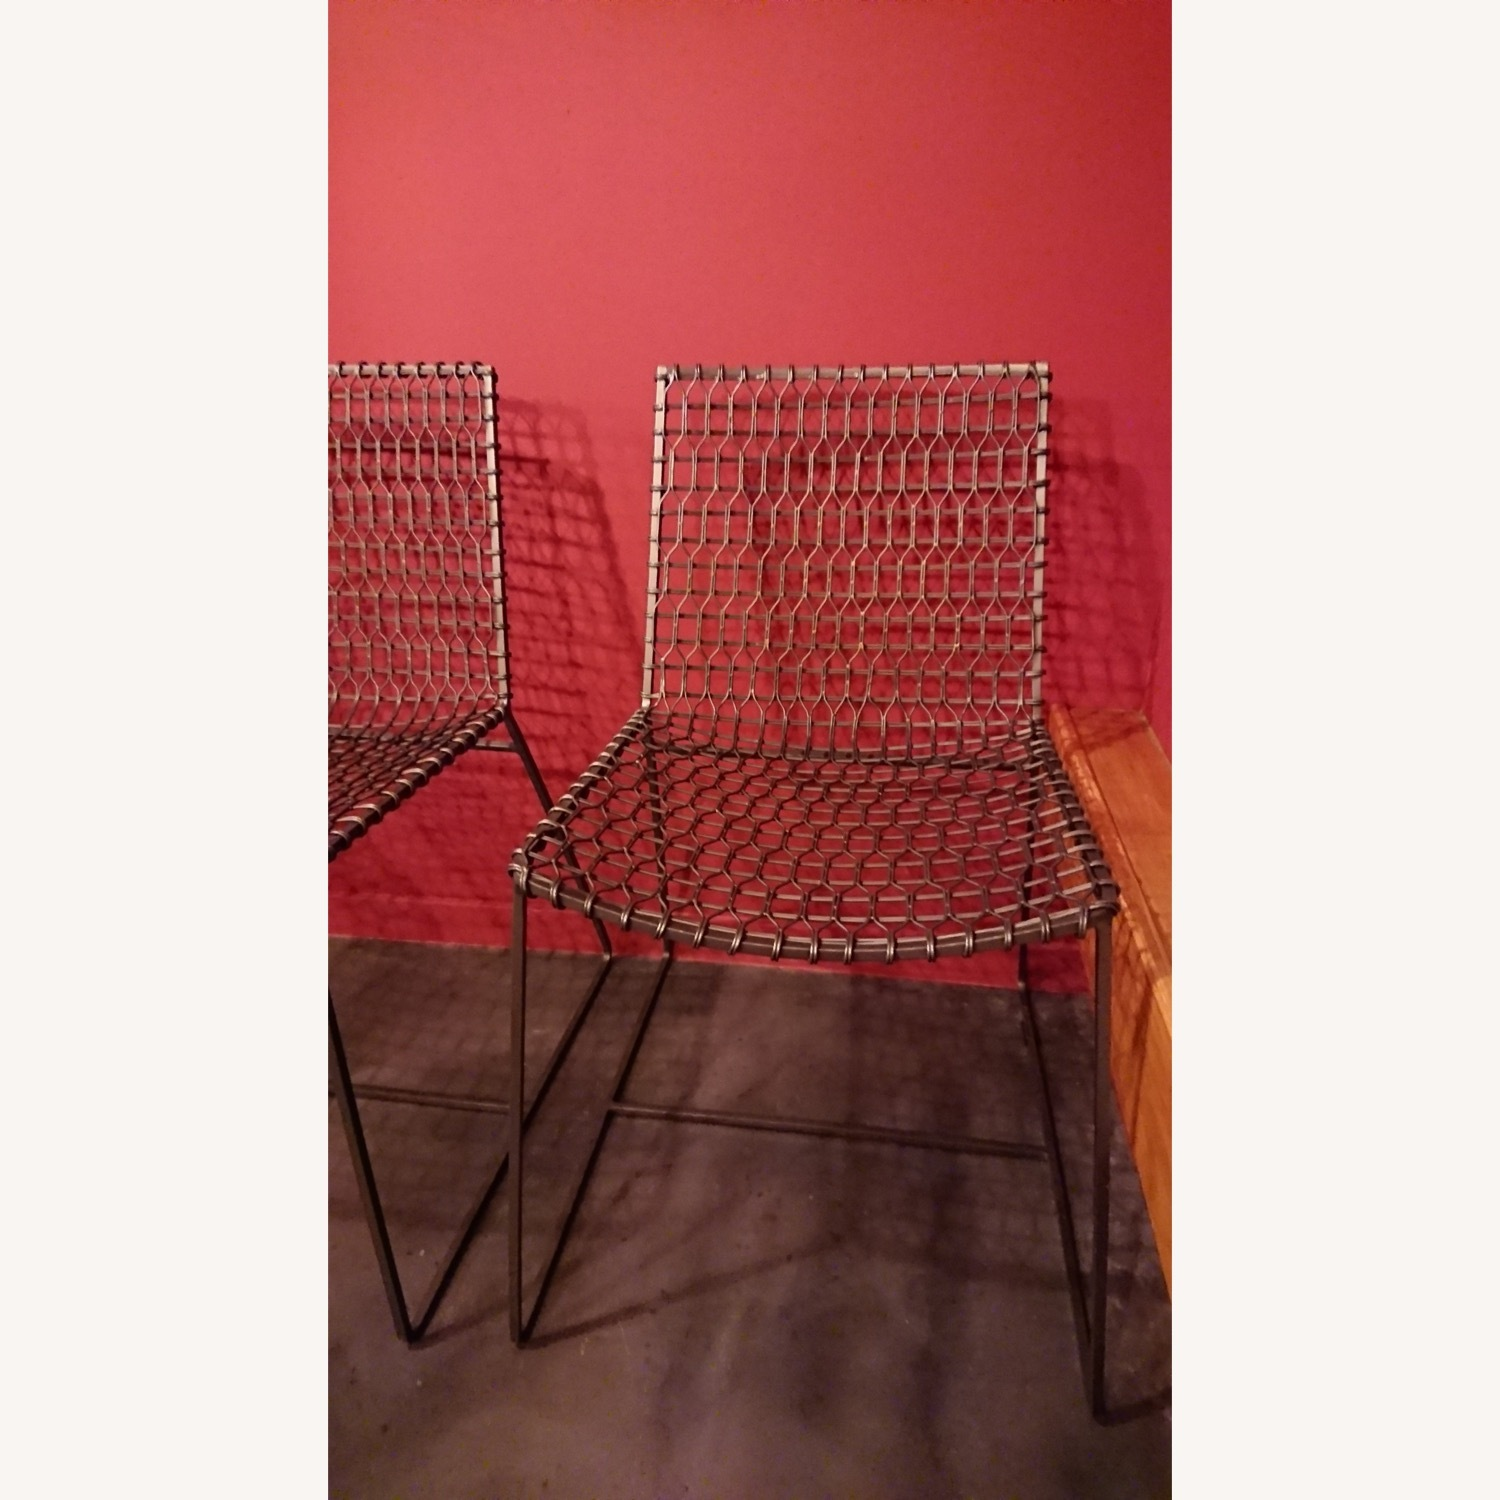 Crate & Barrel Metal Dining Chairs - image-3